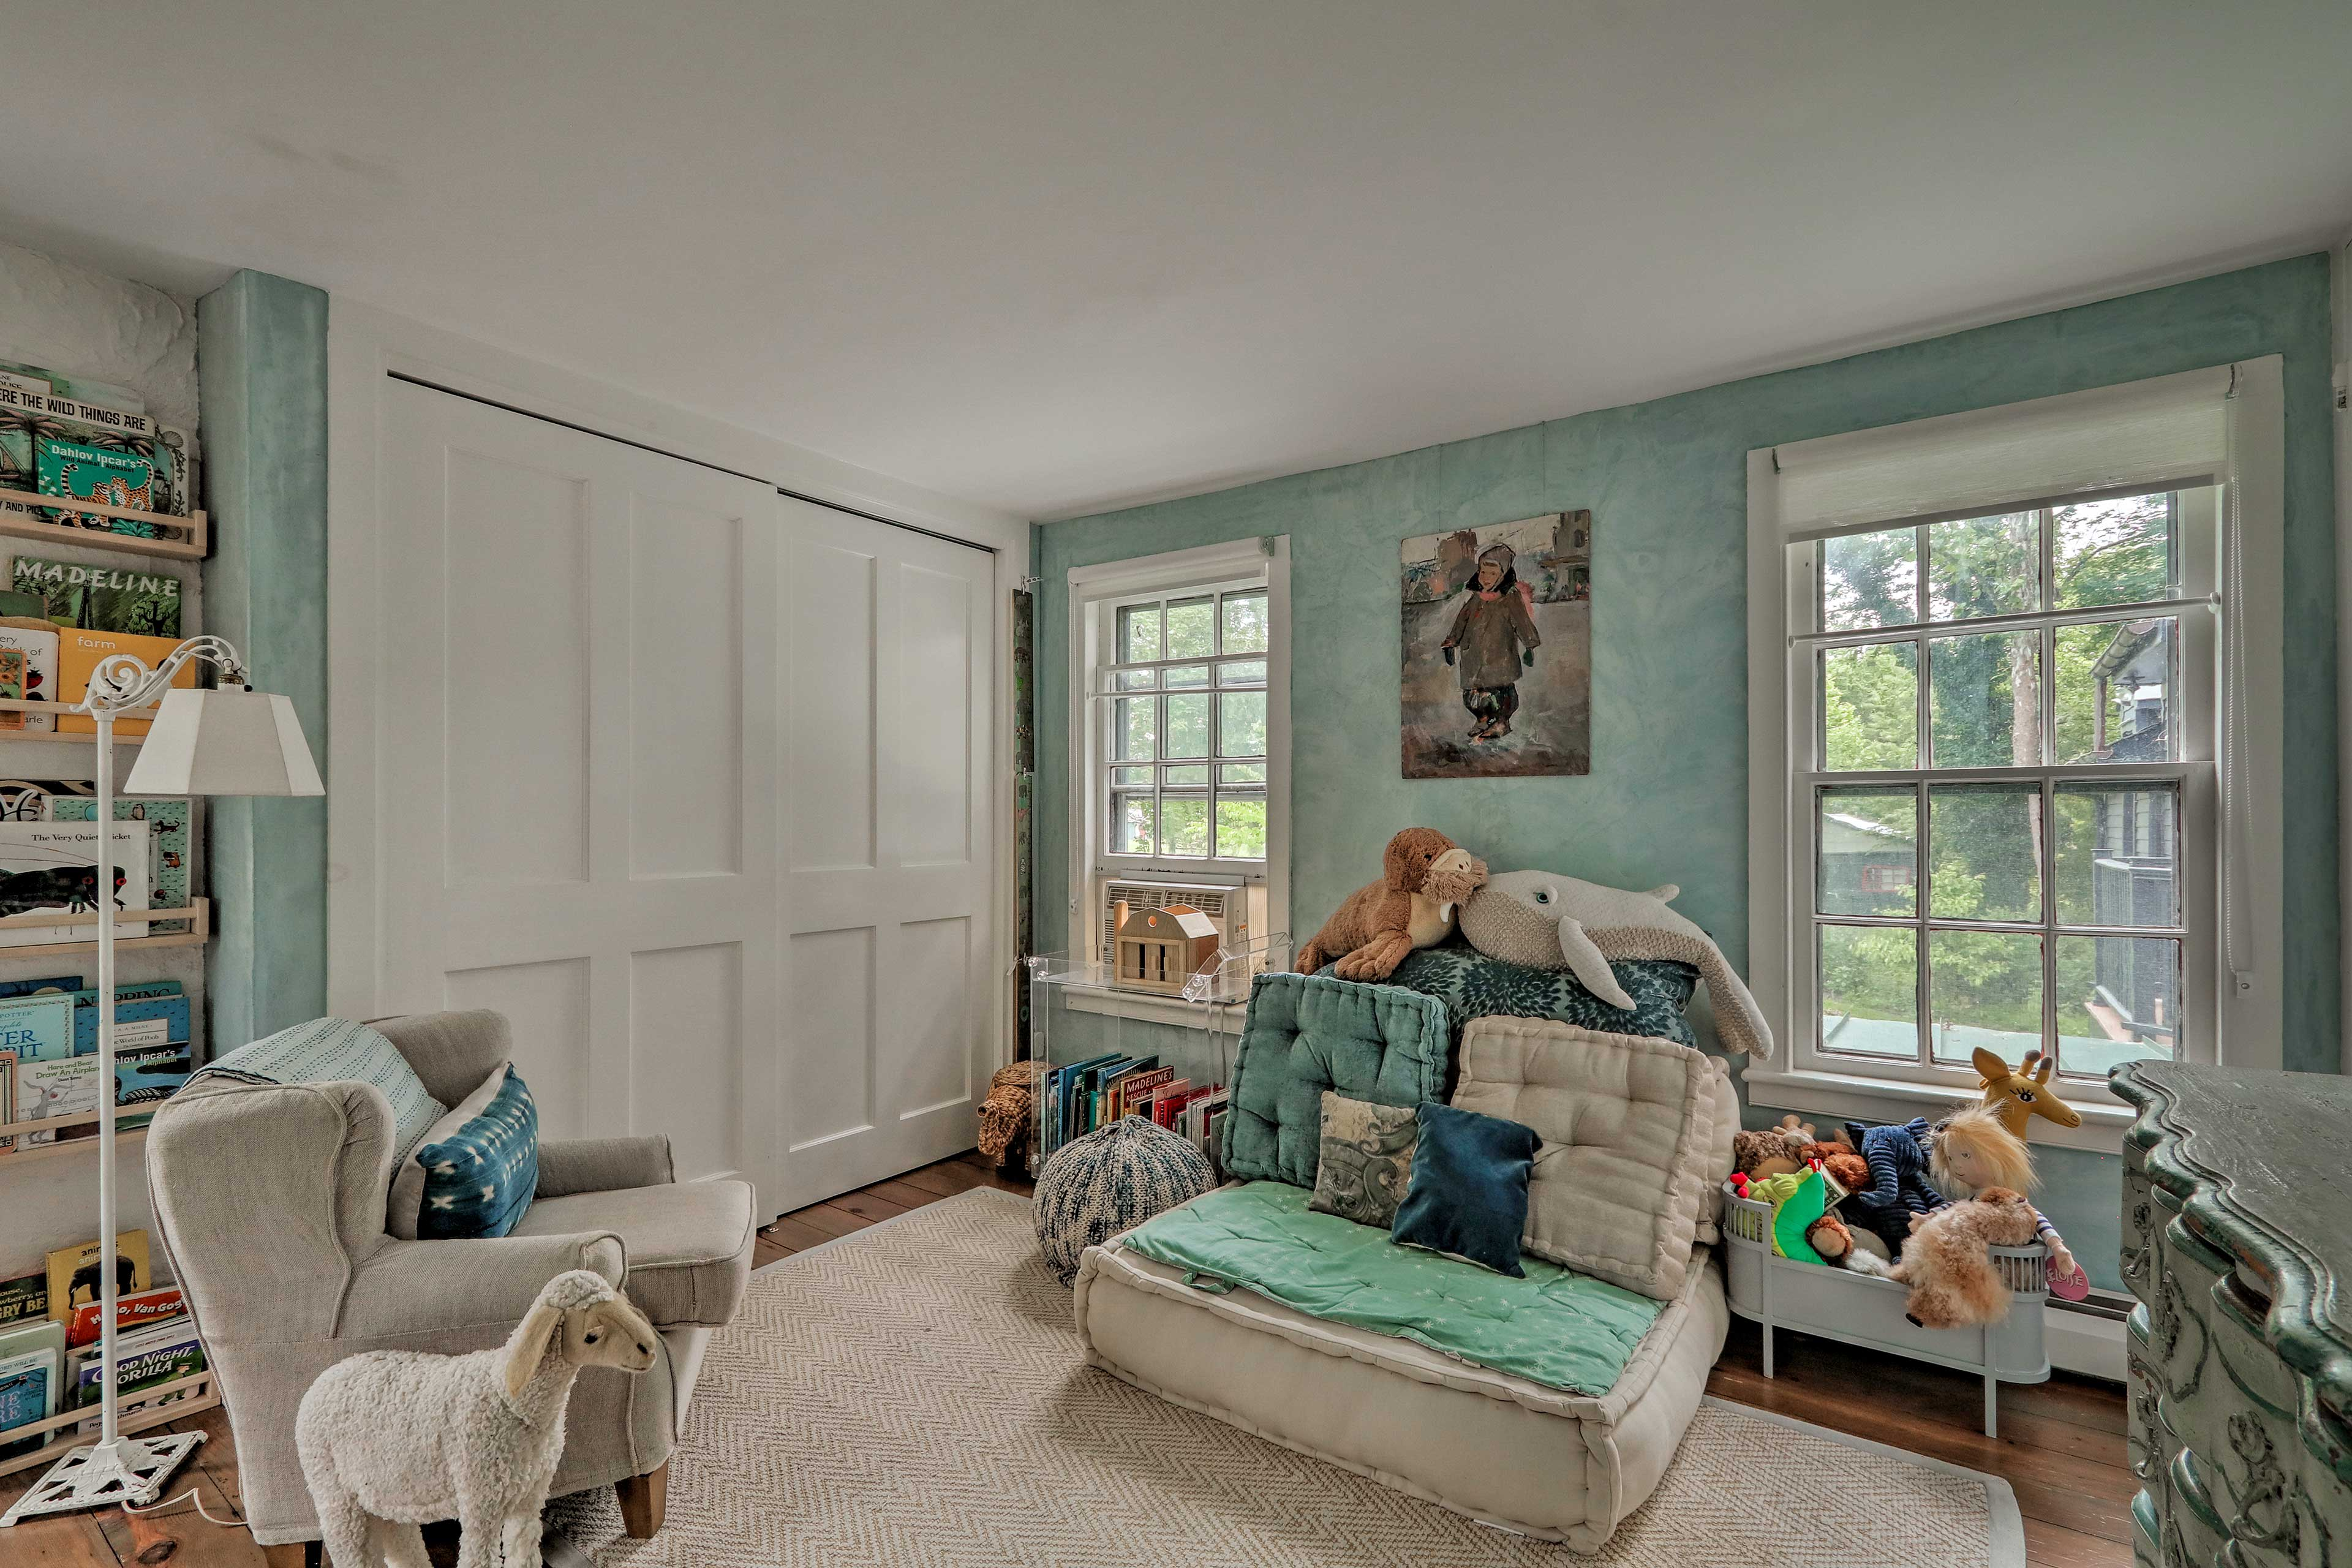 The kids will love this room.